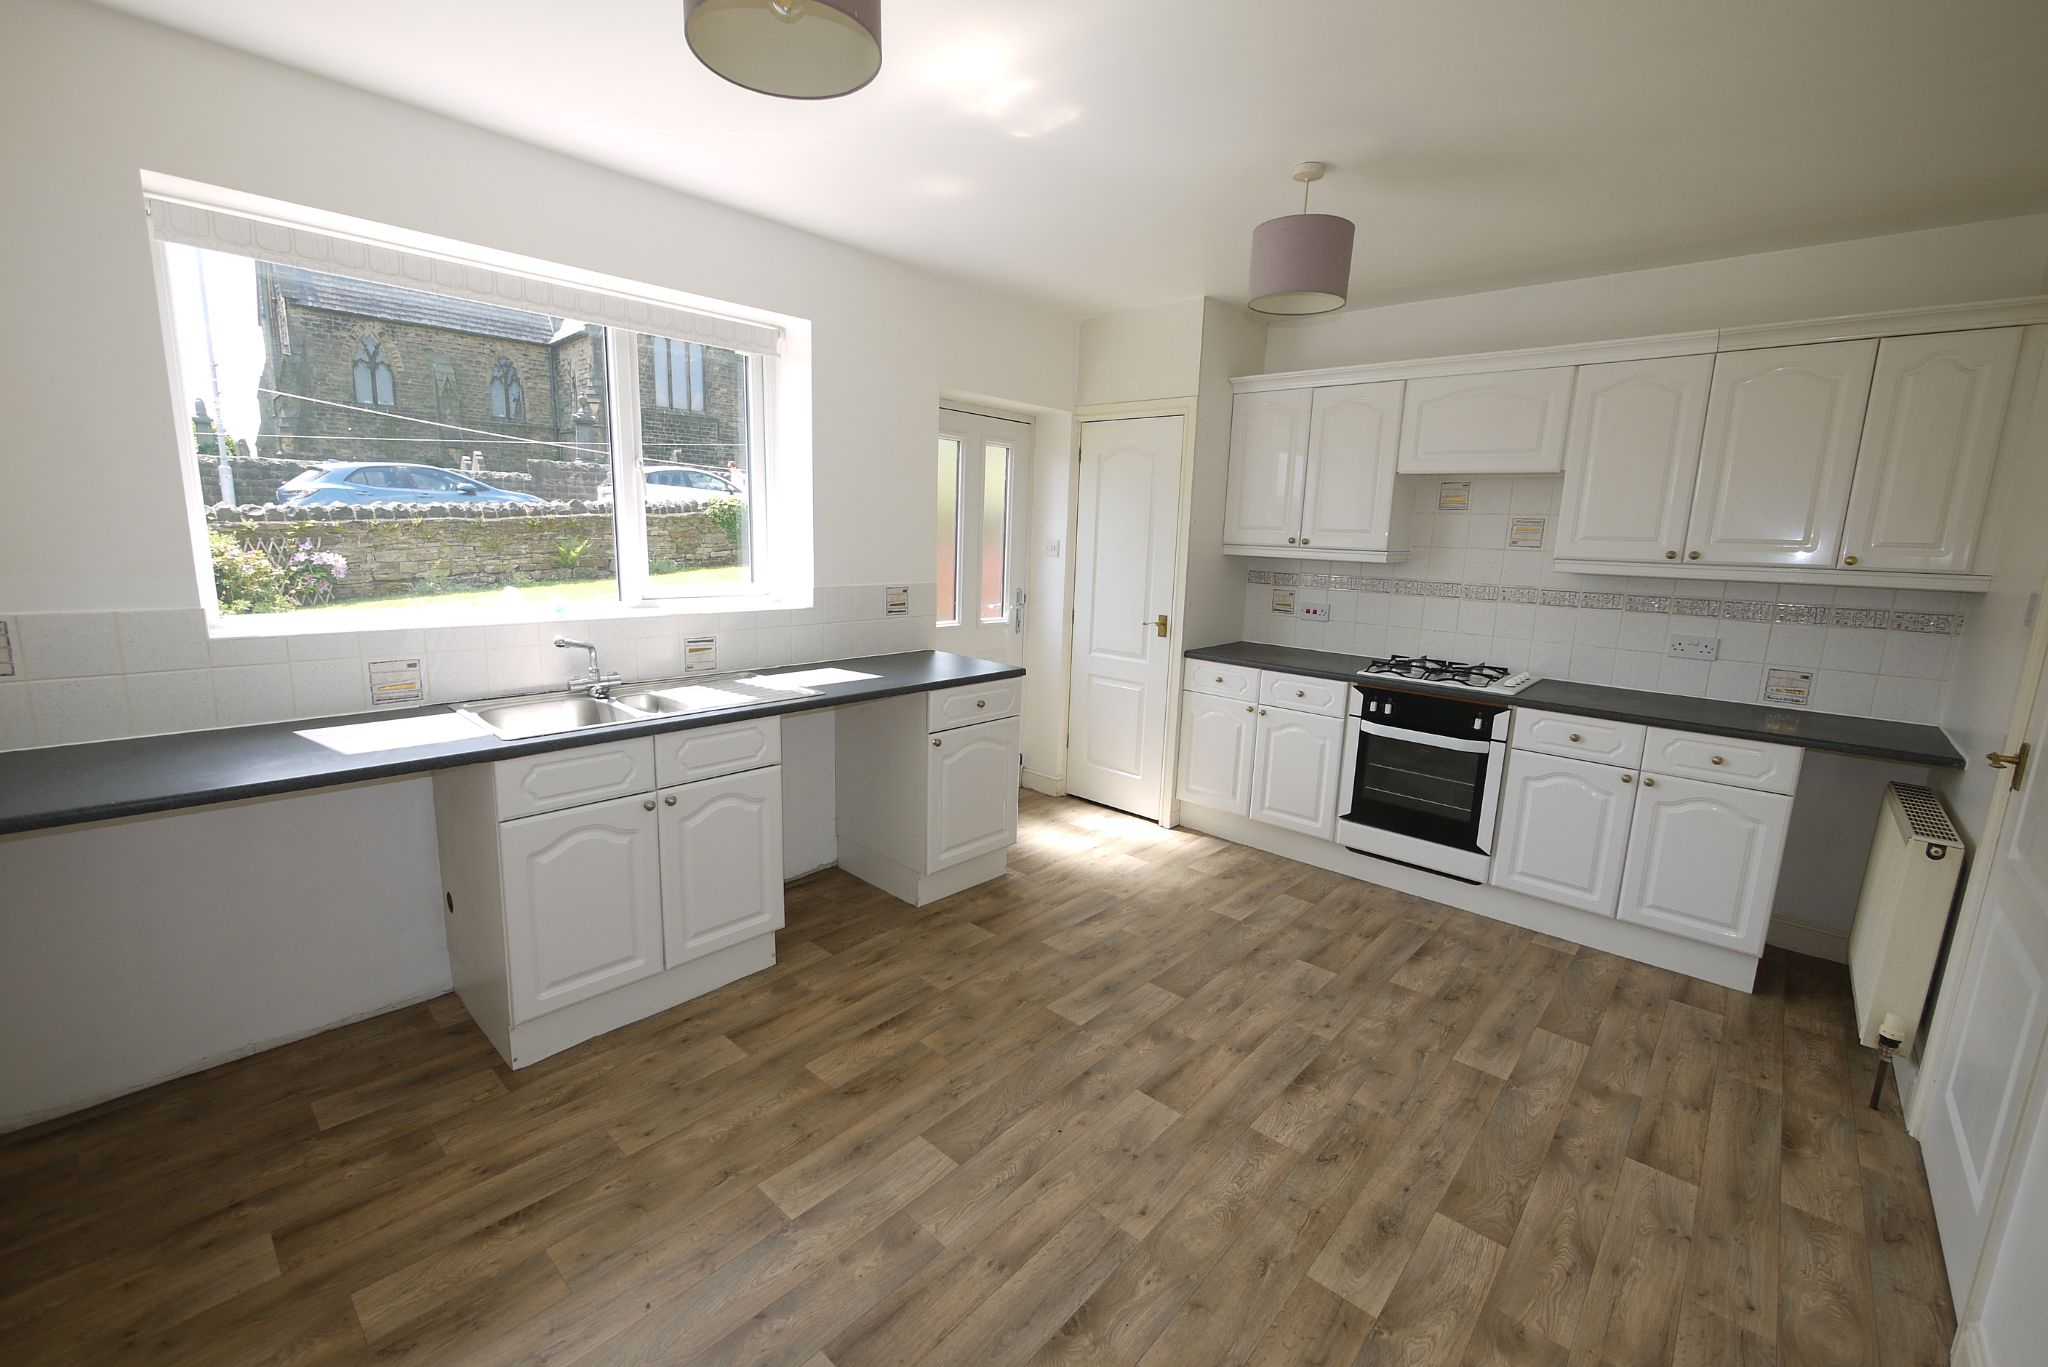 2 bedroom end terraced house SSTC in Brighouse - Dining Kitchen.